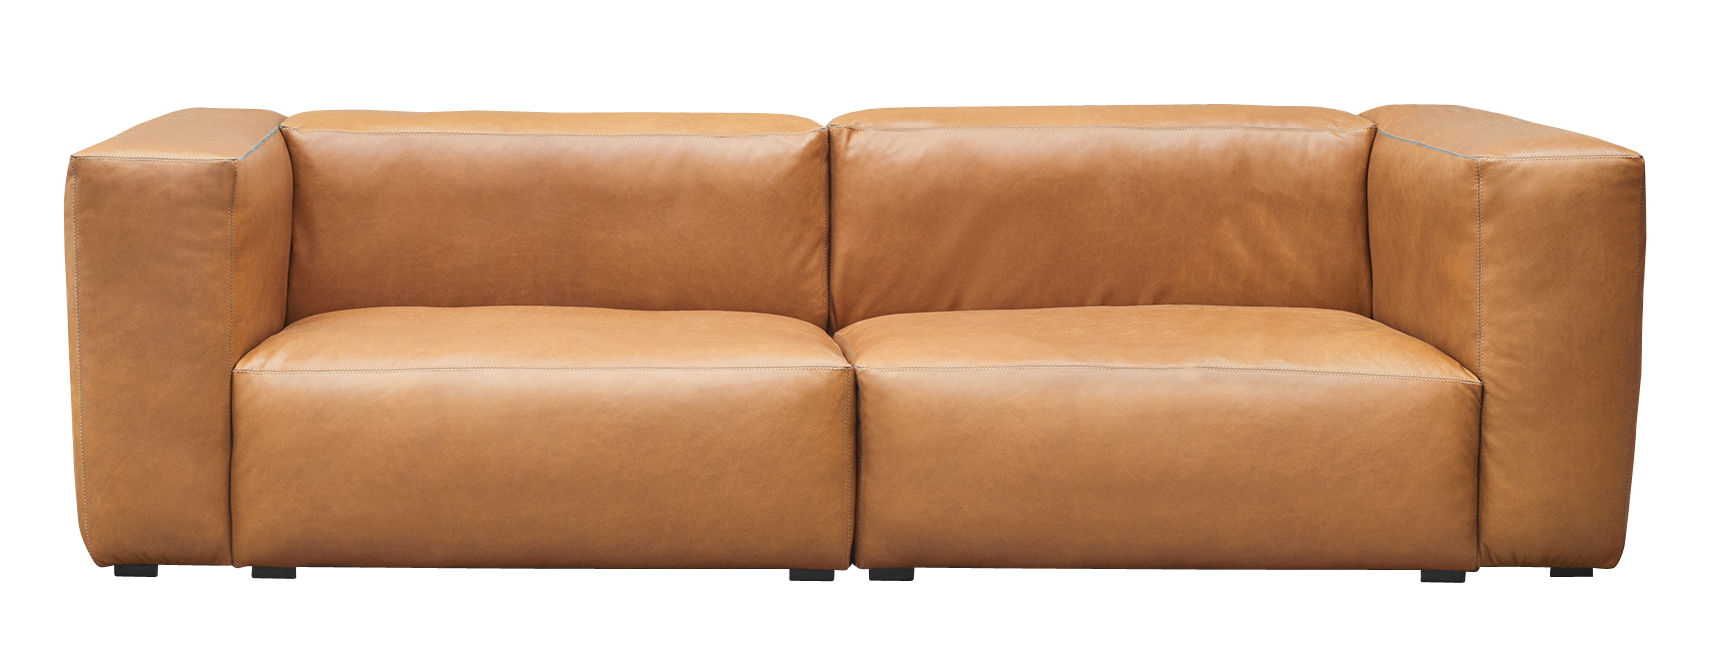 Furniture - Sofas - Mags Soft Straight sofa - / 2 or 3 places - L 228 cm / Leather by Hay - Cognac leather - Leather